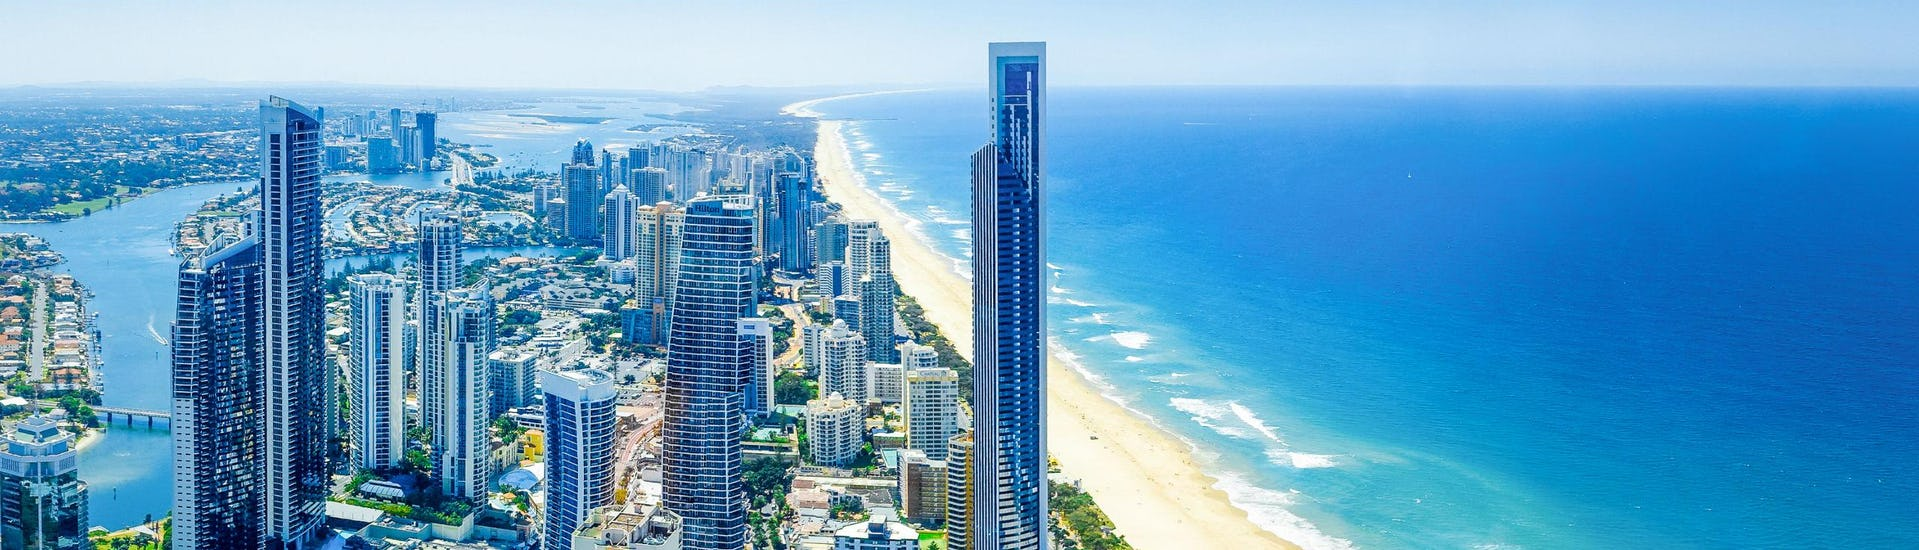 An image of Surfers Paradise with its impressive skyline, a sight that can be taken in by visitors who go kayaking in Gold Coast.